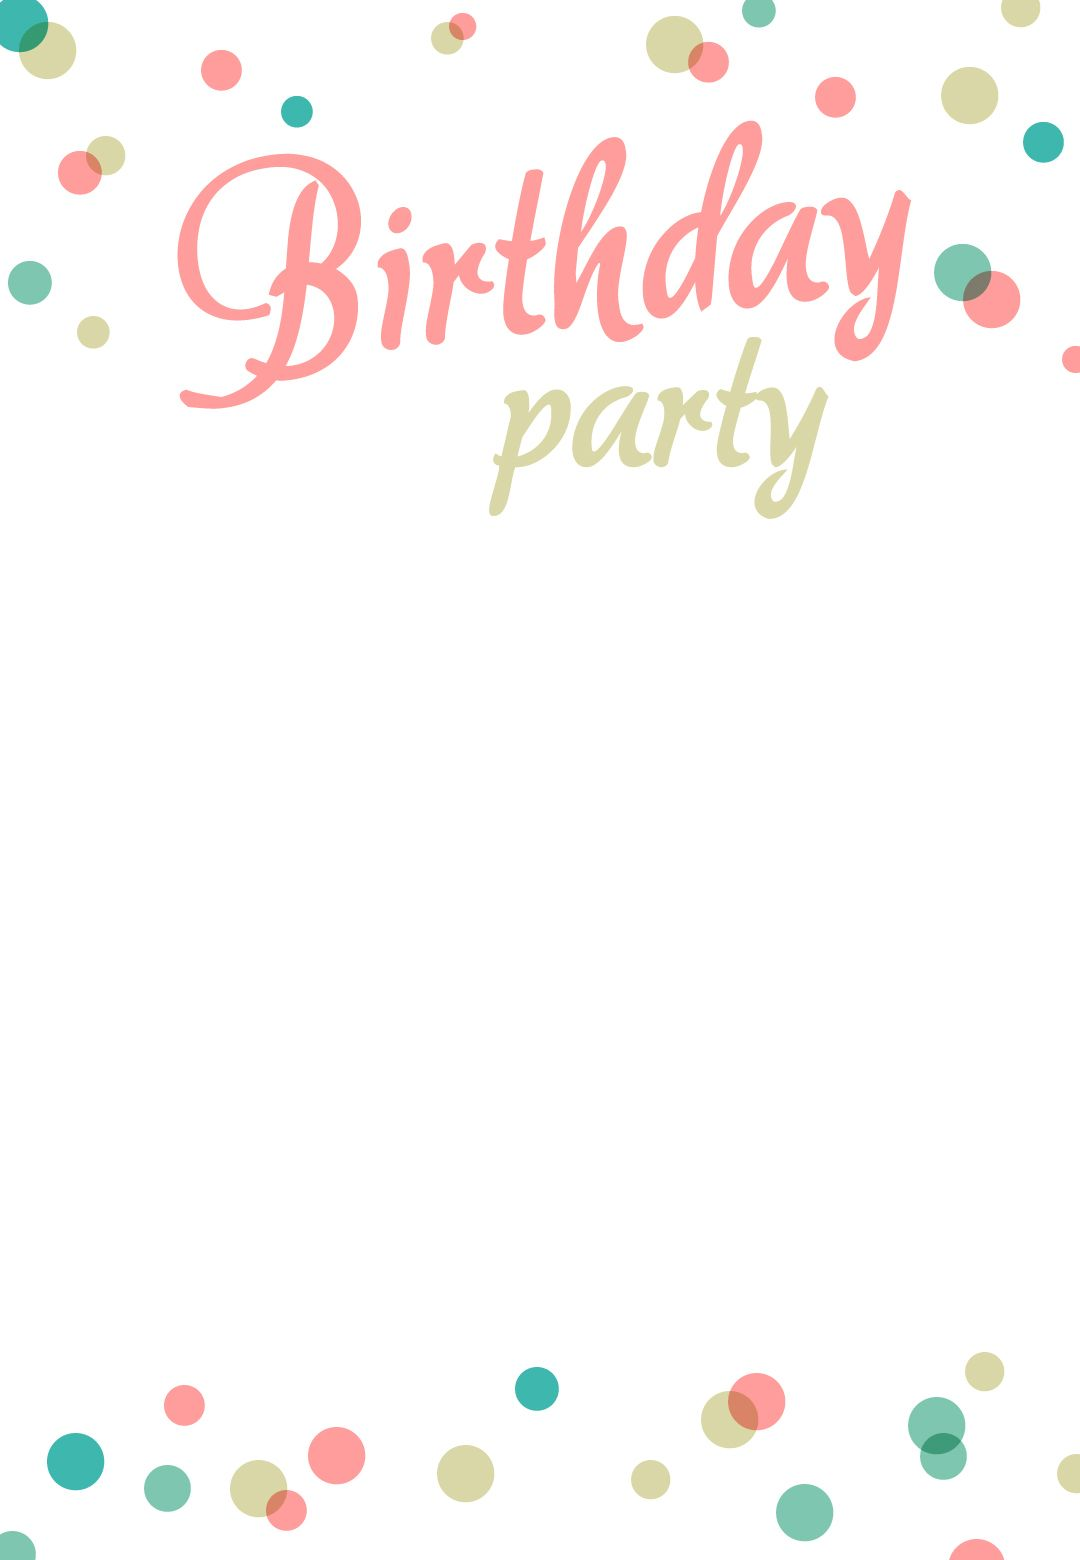 Birthday Invitation Templates Word Sample Birthday Invitation Template 40  Documents In Pdf Psd, Invitation Birthday Template Word, Birthday Party  Invitation ...  Free Birthday Party Invitation Templates For Word